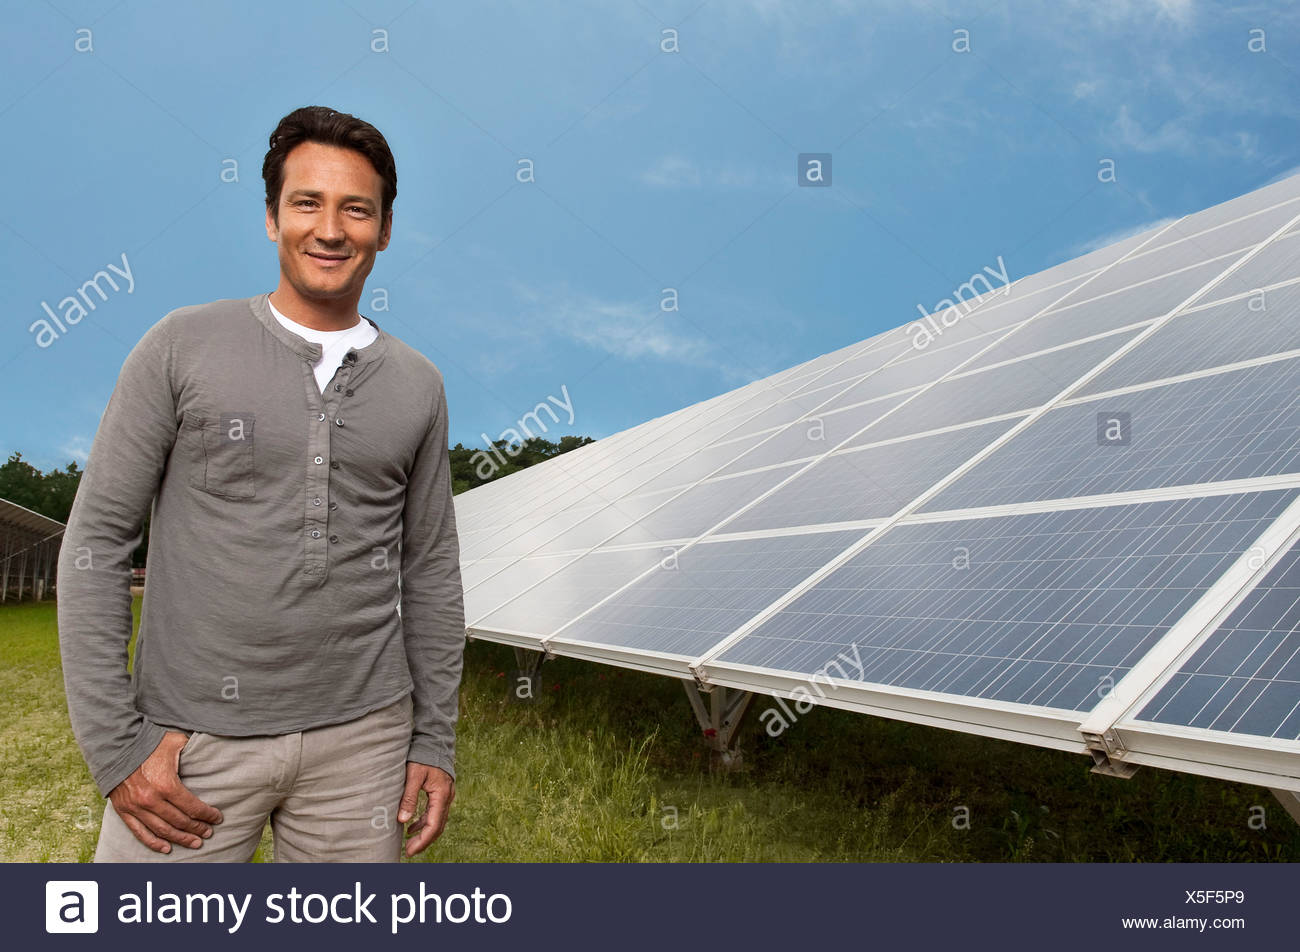 Man standing in front of solar panel - Stock Image